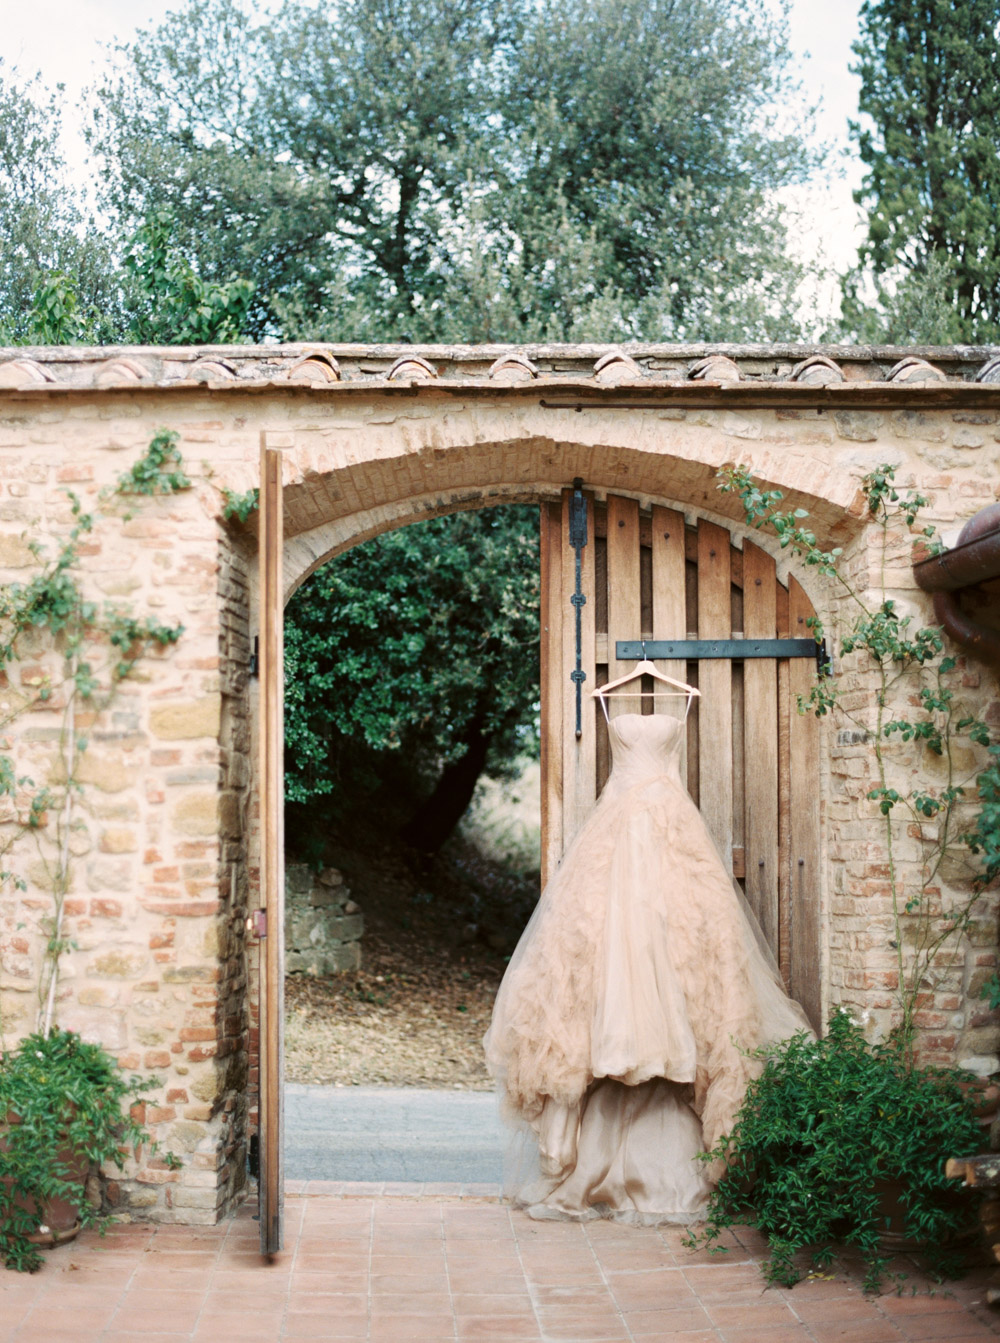 Wedding dress in Italy by Katie Grant